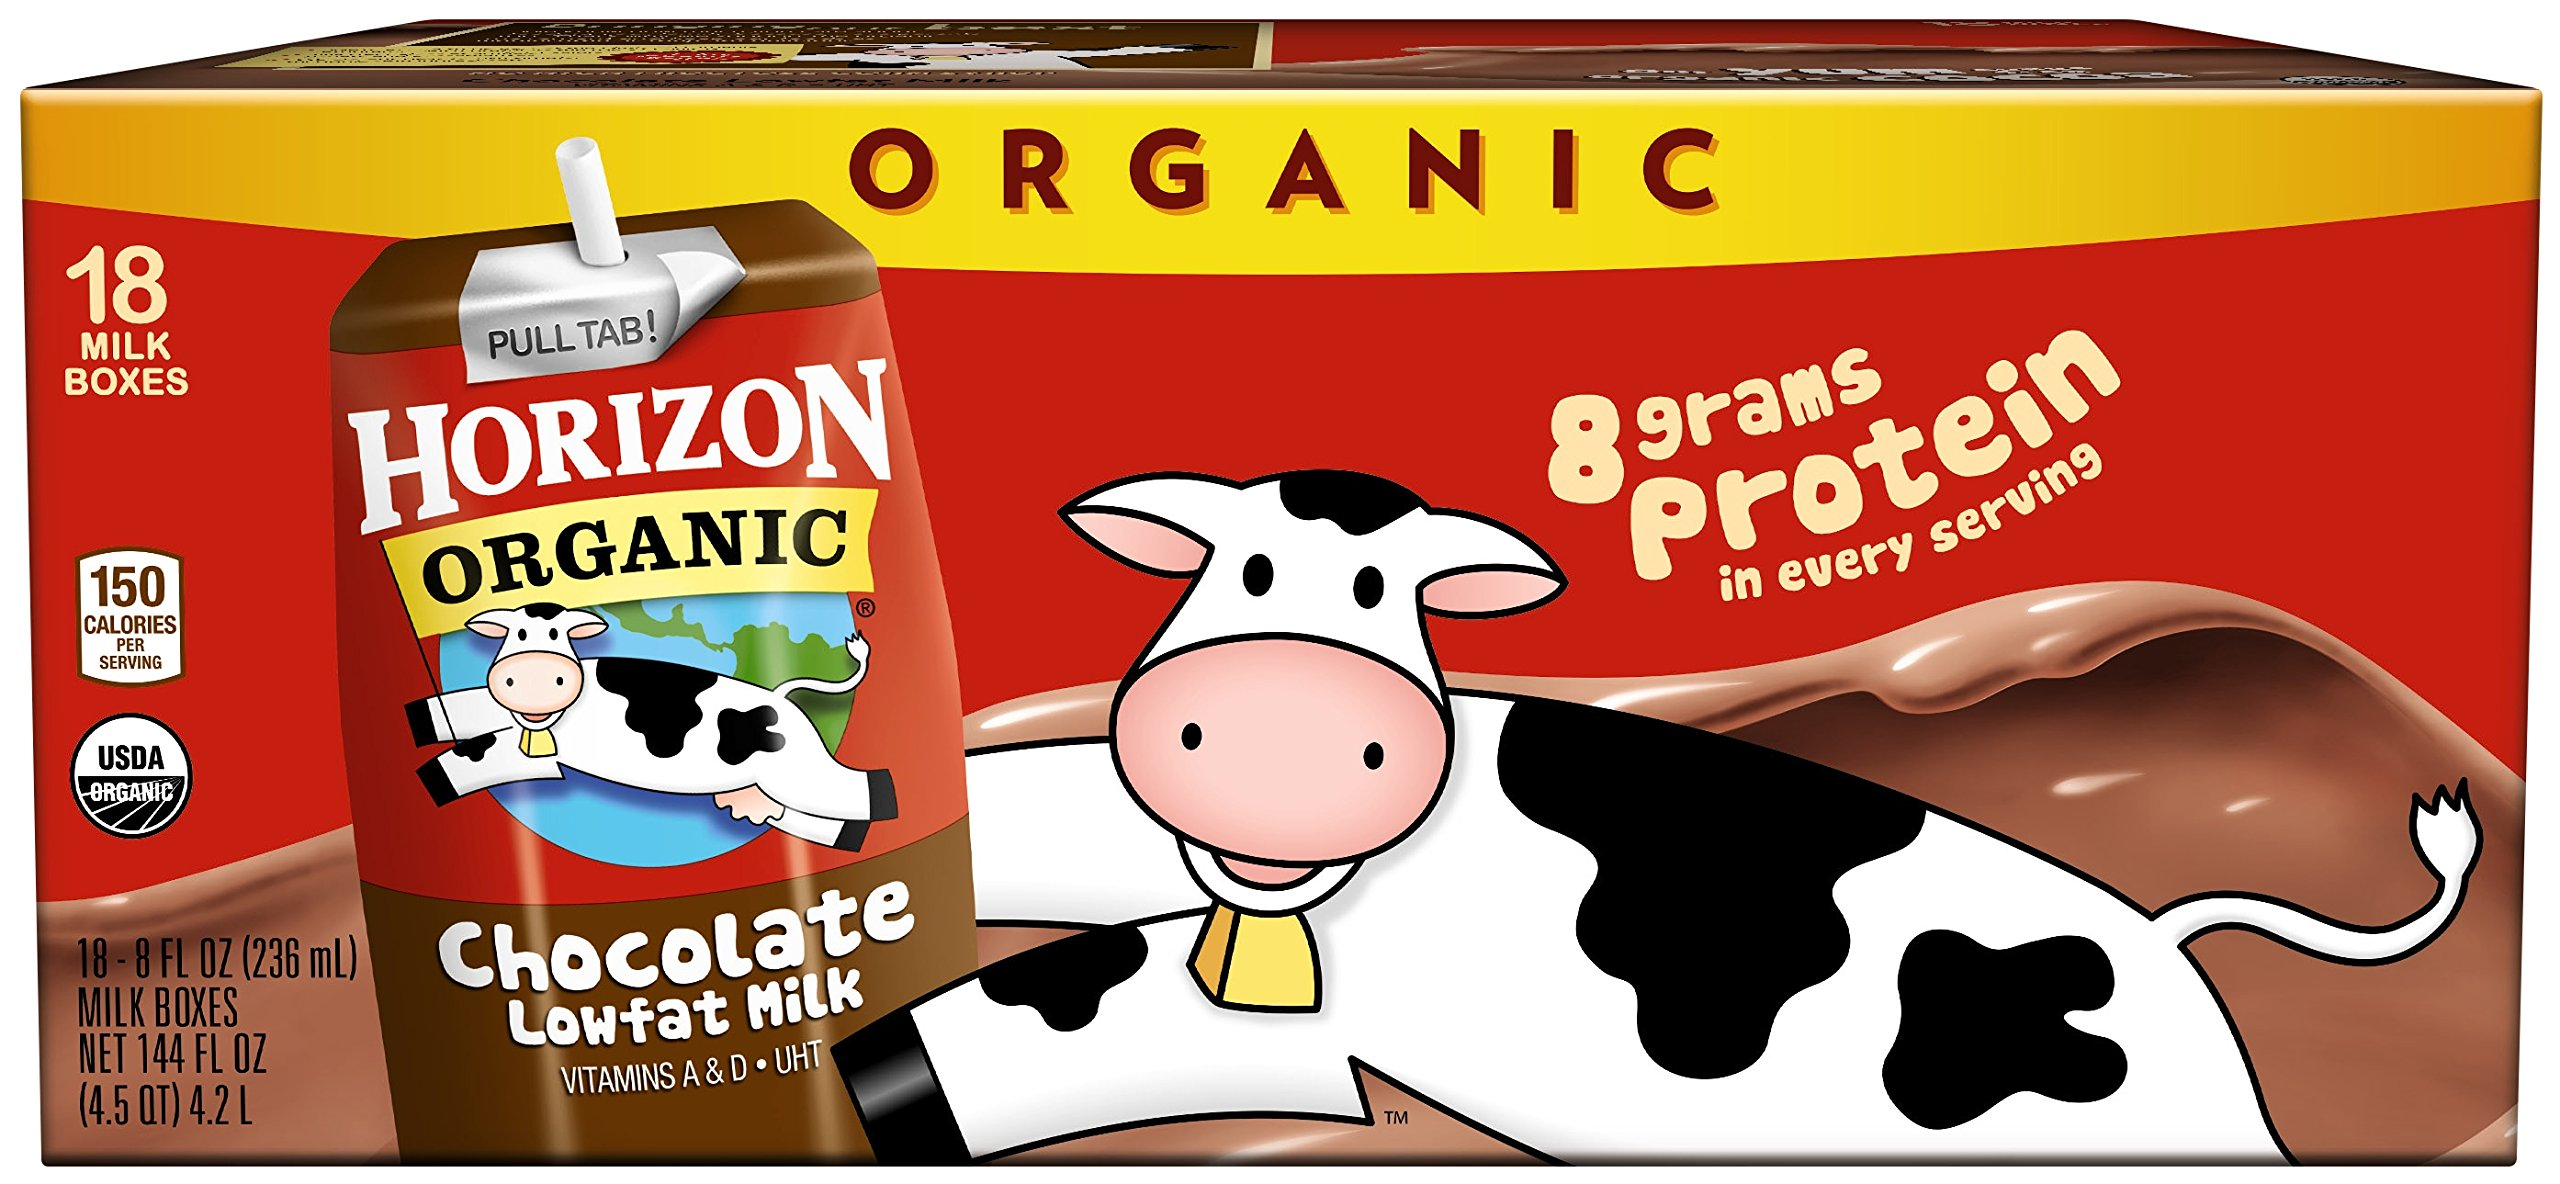 Horizon Organic, Low Fat Milk, Chocolate, 8-Ounce Aseptic Cartons (Pack of 18), 8g Protein and 30% DV Calcium, Juice Box Alternative